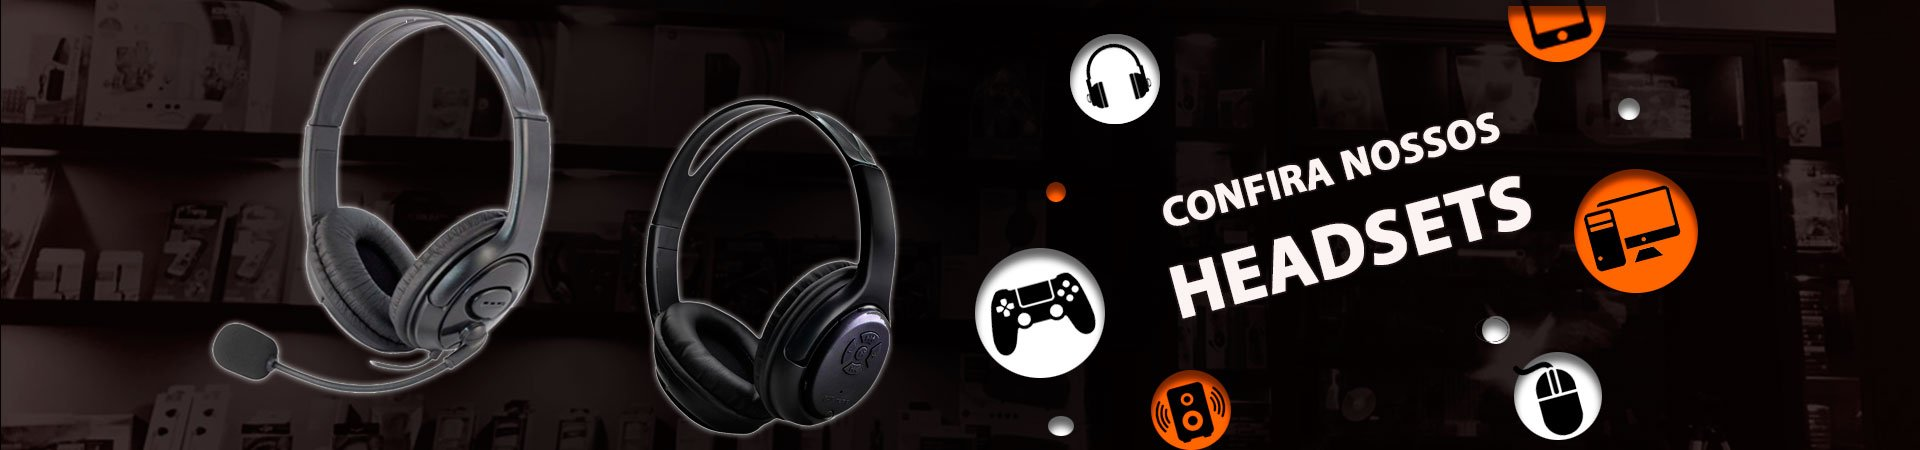 Banner Headsets